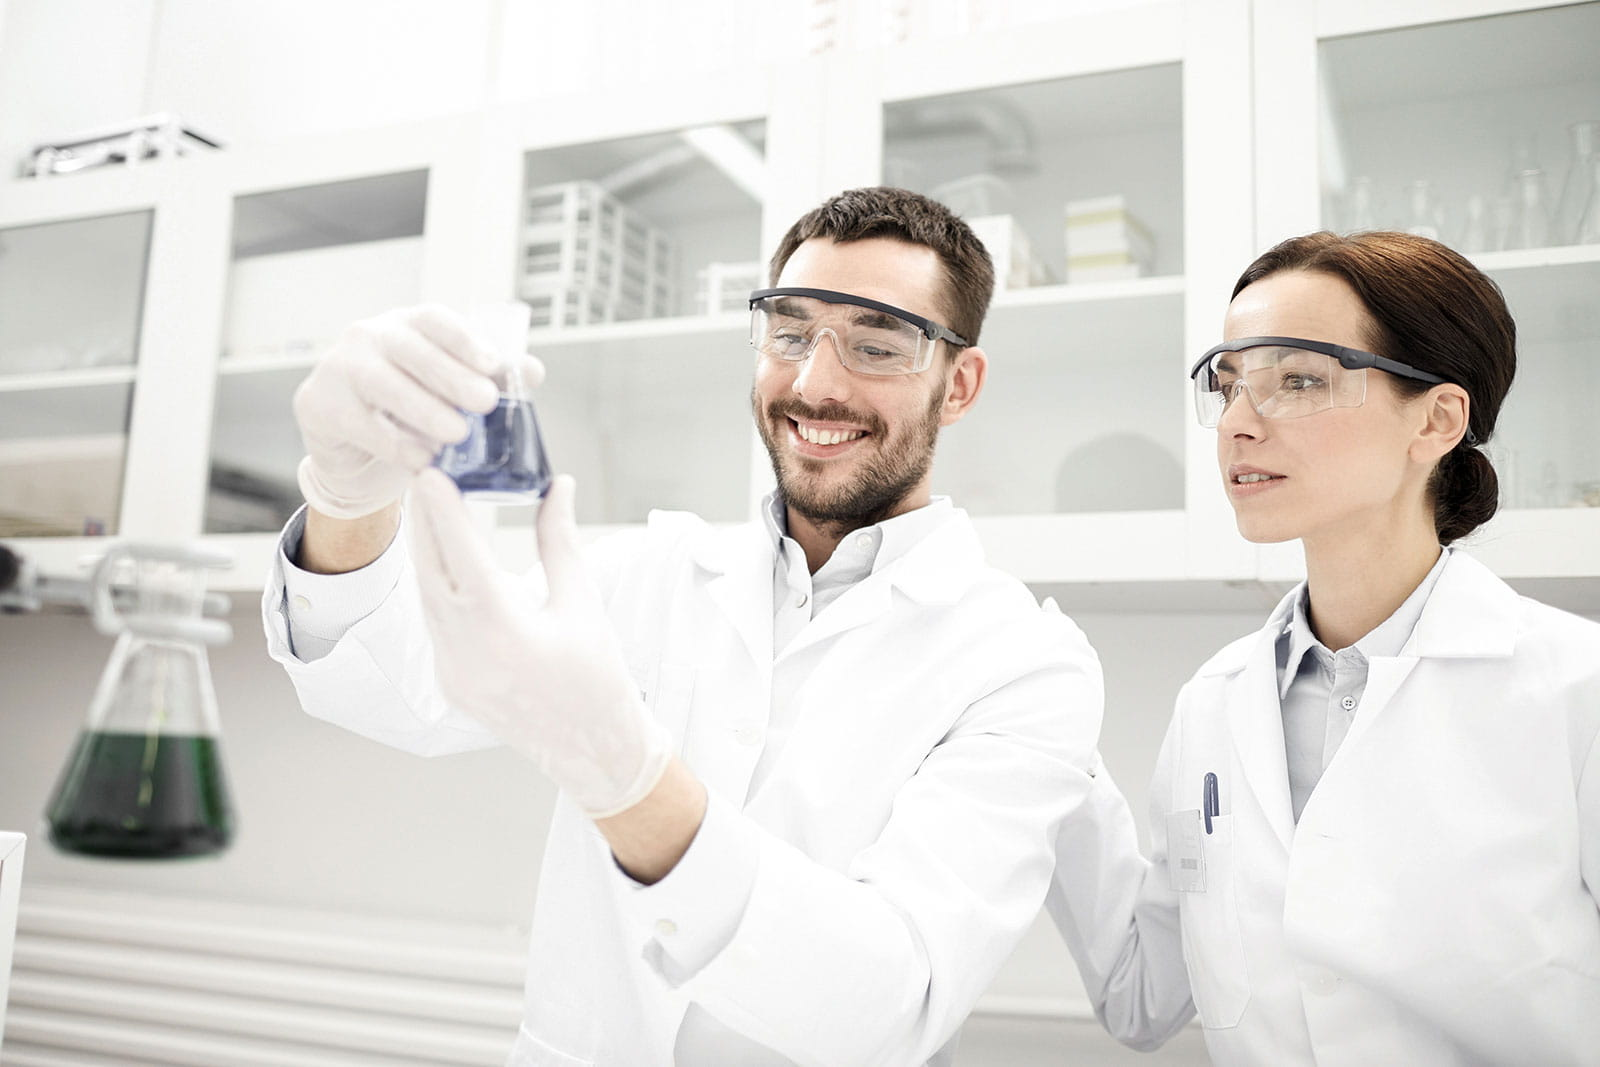 Researchers in a lab